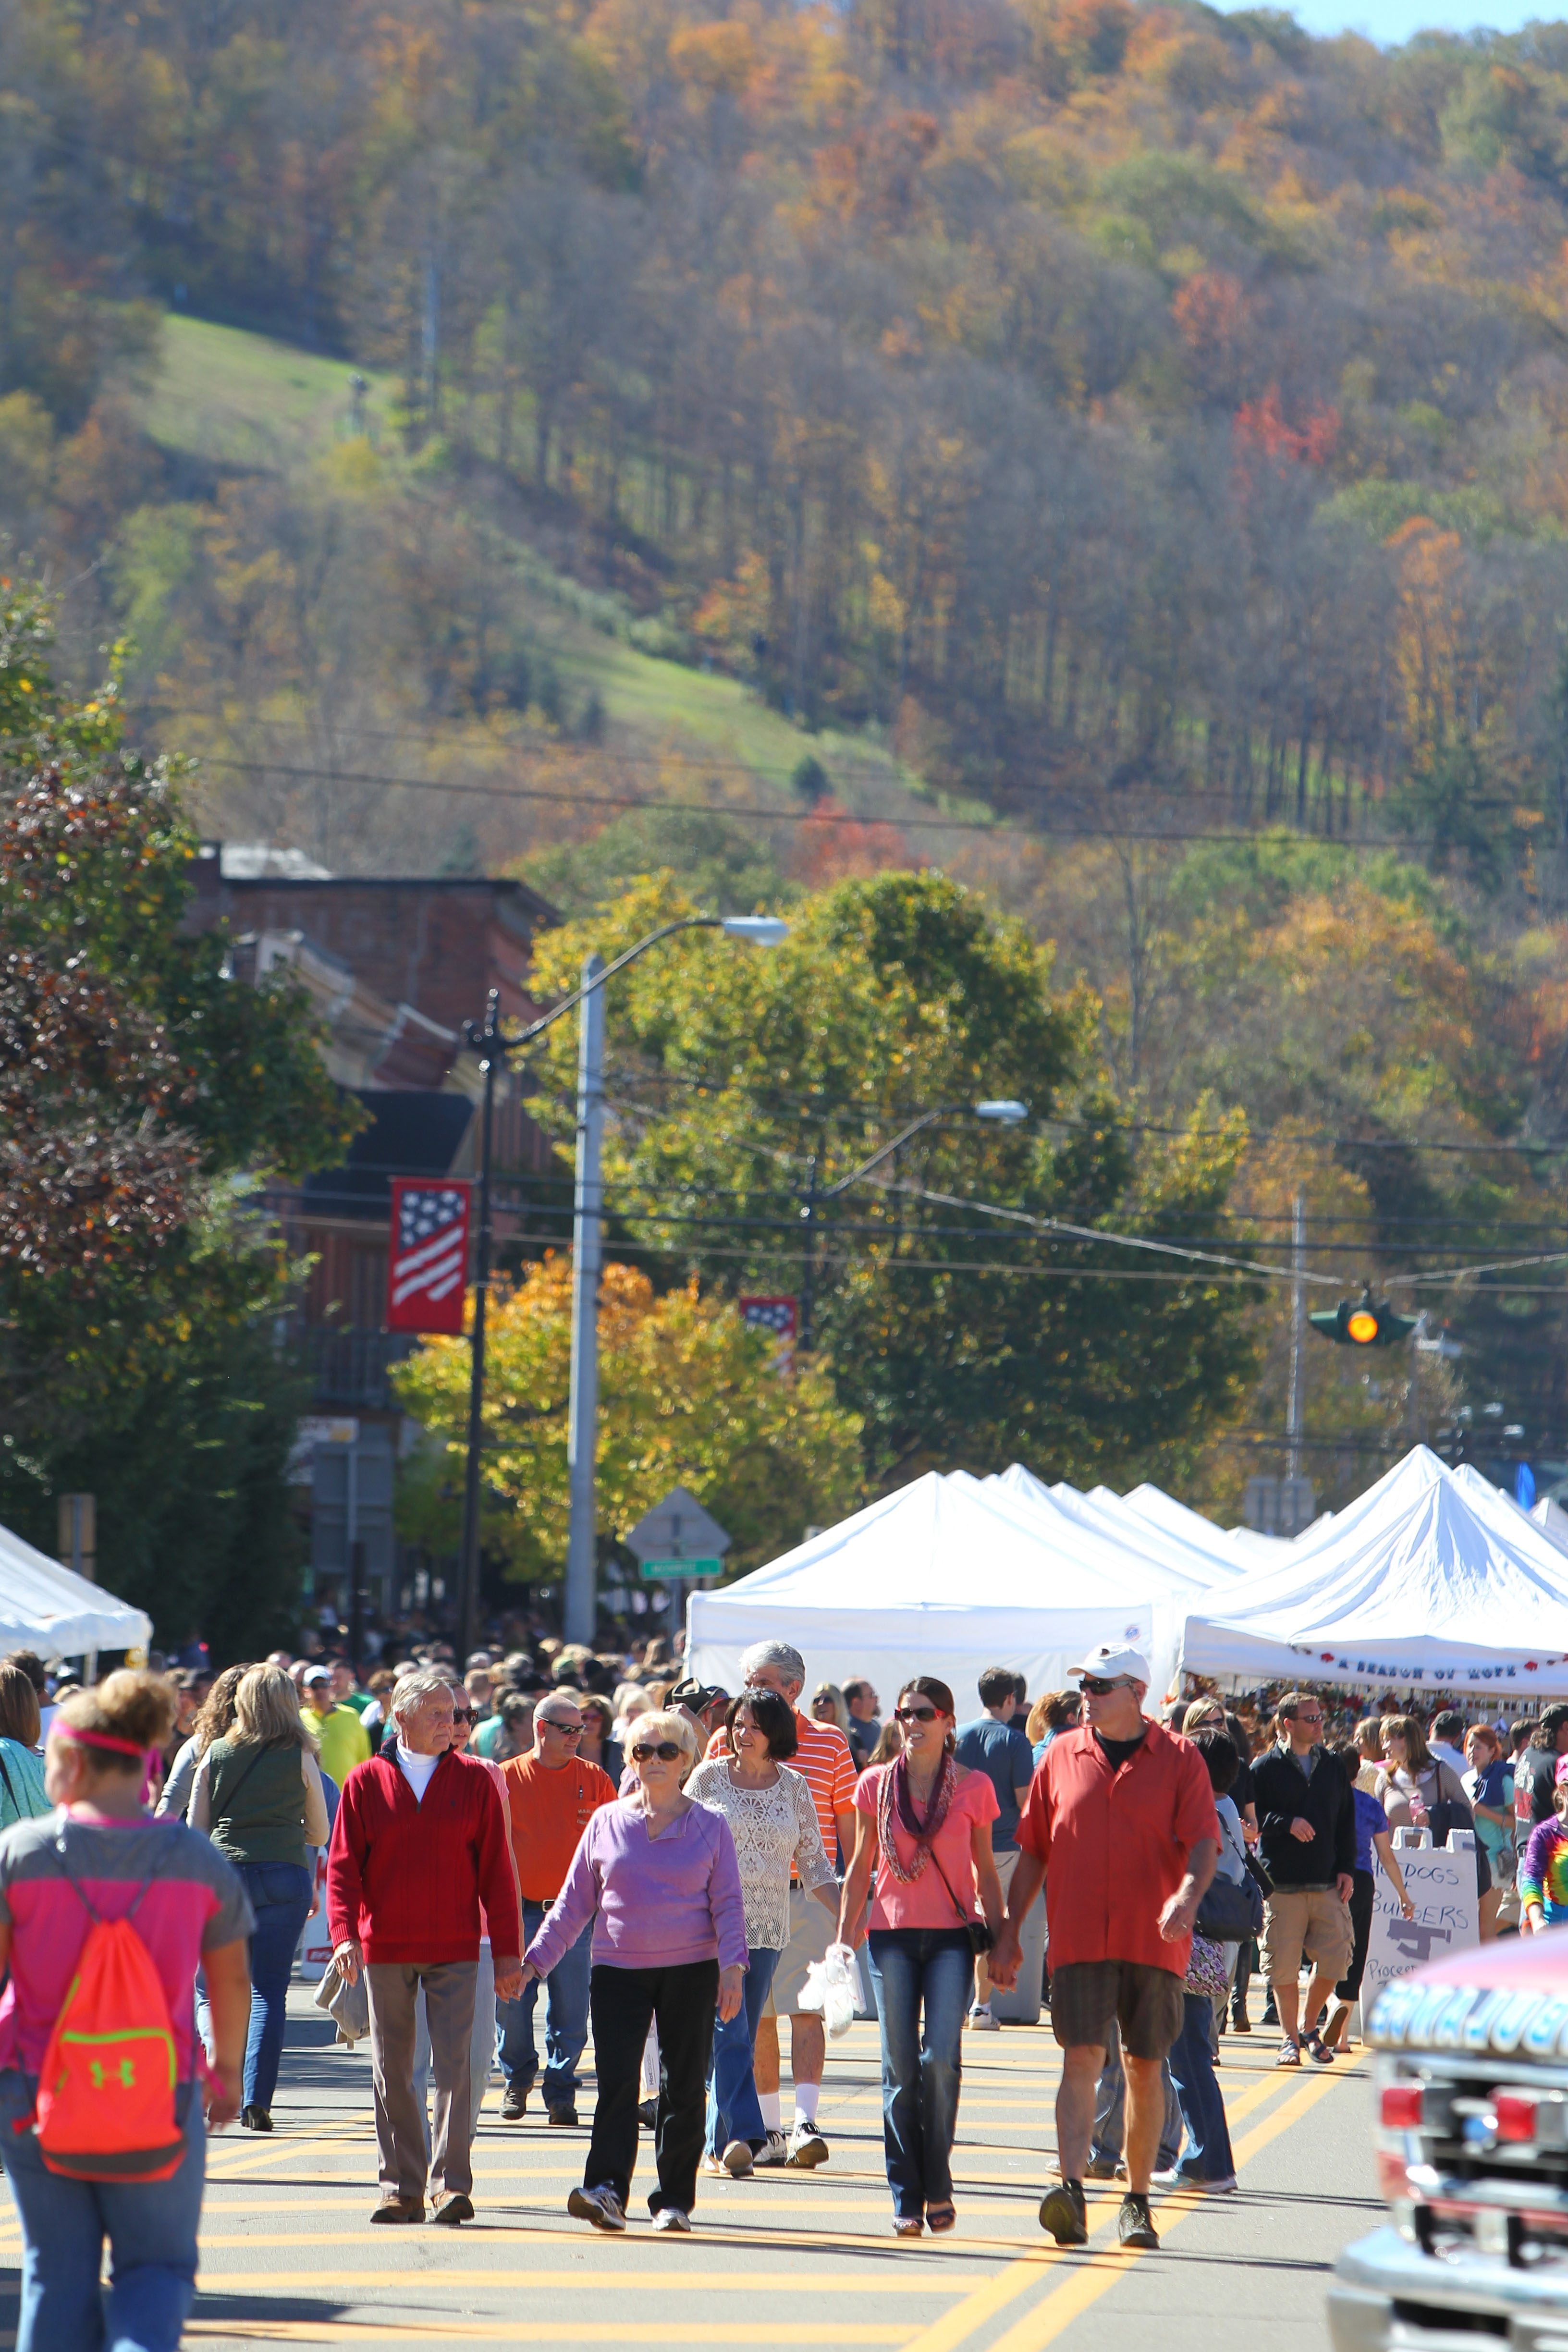 Crowds fill the streets for the annual Fall Festival in Ellicottville on Saturday. The ski village has become as popular a destination in the summer and the fall as it is in the winter.